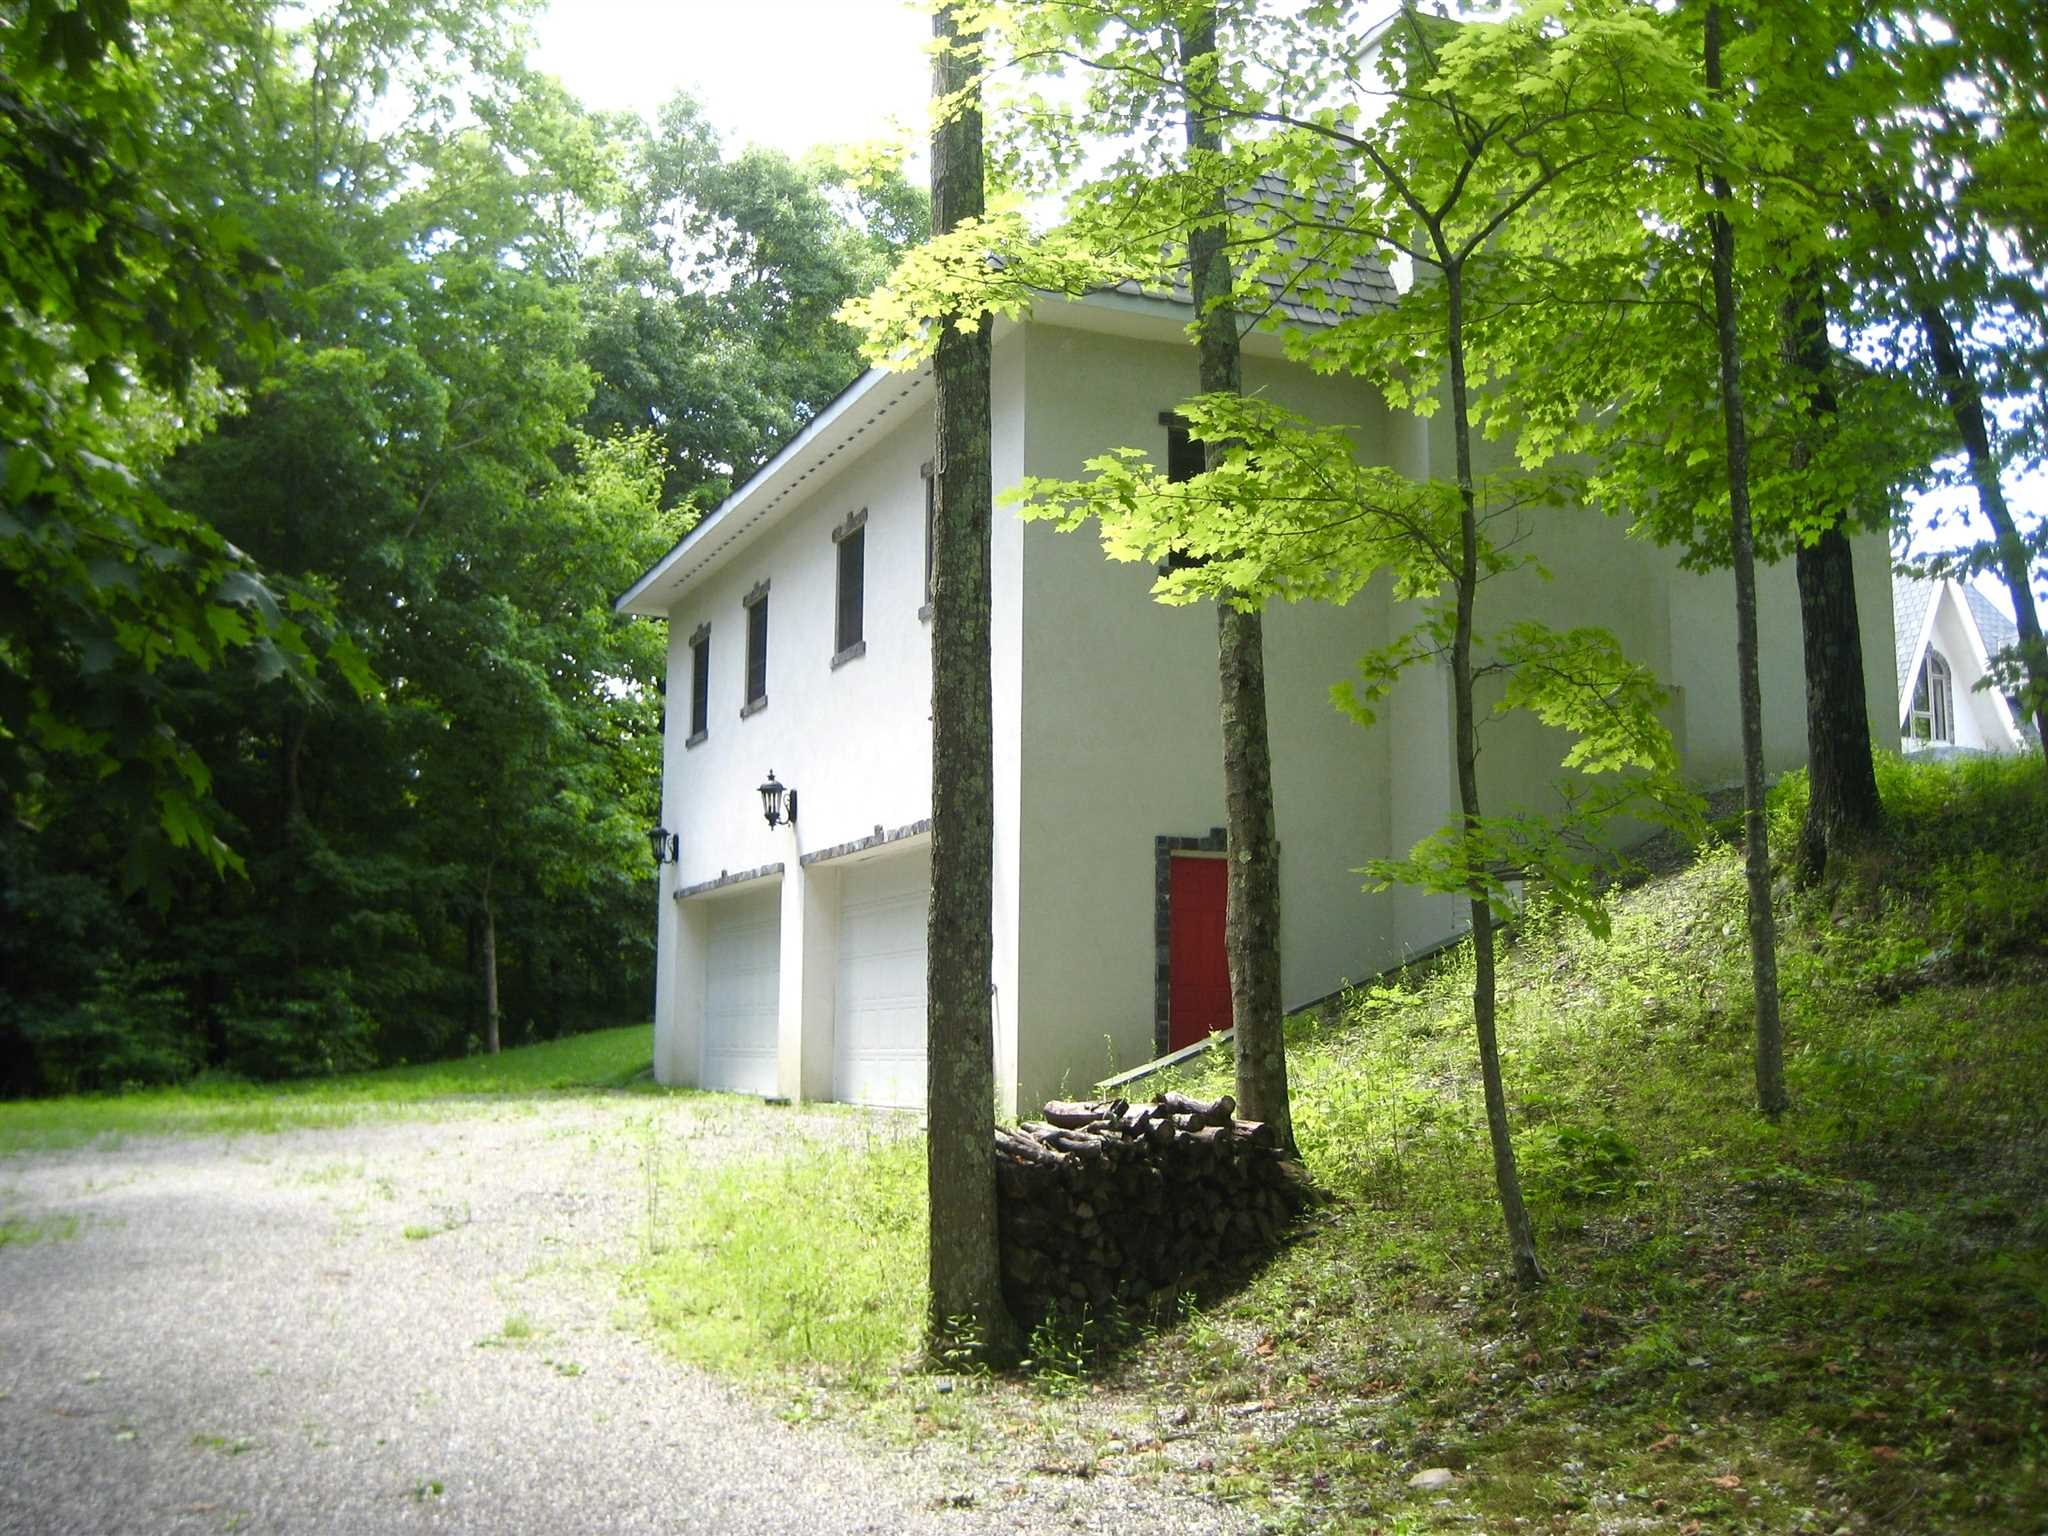 28 HICKS HILL RD Stanford, NY 12581 - MLS #: 364630